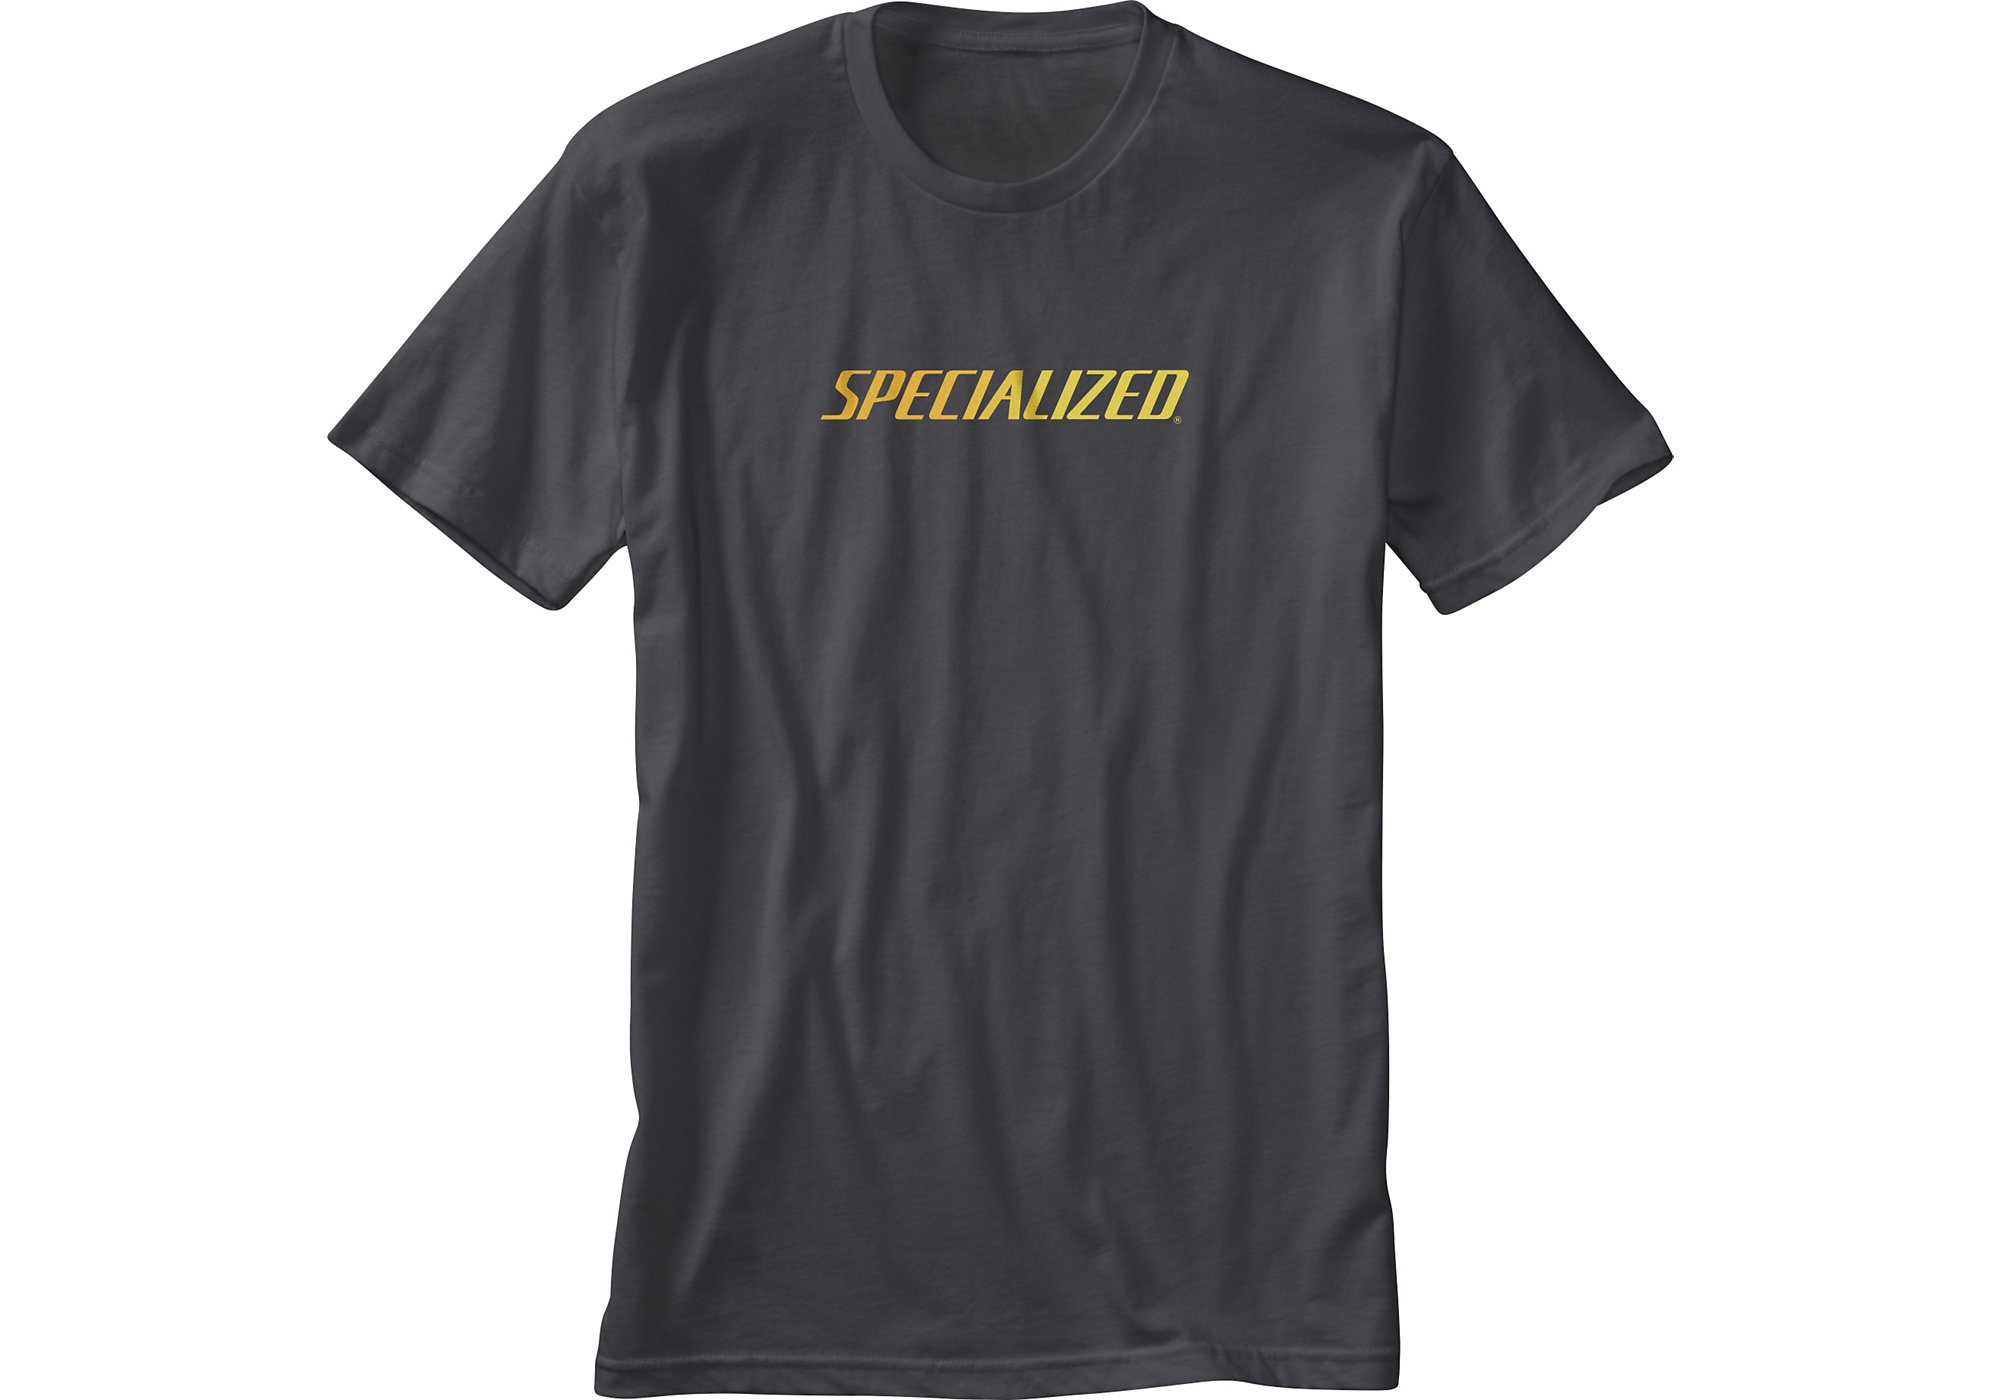 05494d2a6be Specialized Podium Tee Torch Edition - Spokes Wheaton IL Naperville ...